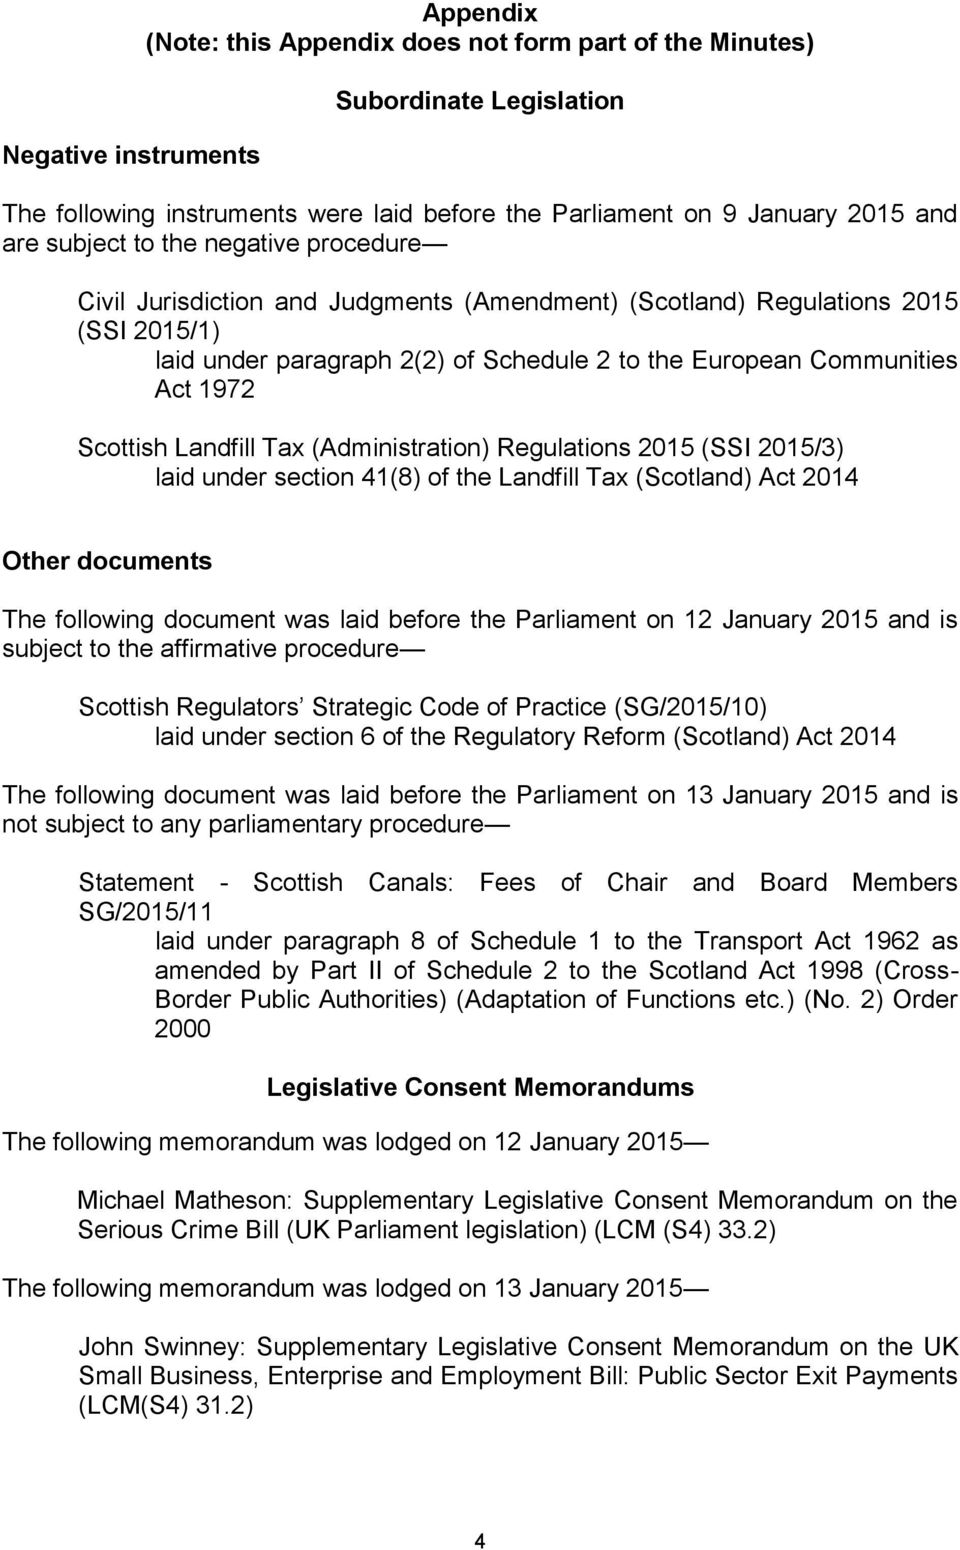 Scottish Landfill Tax (Administration) Regulations 2015 (SSI 2015/3) laid under section 41(8) of the Landfill Tax (Scotland) Act 2014 Other documents The following document was laid before the